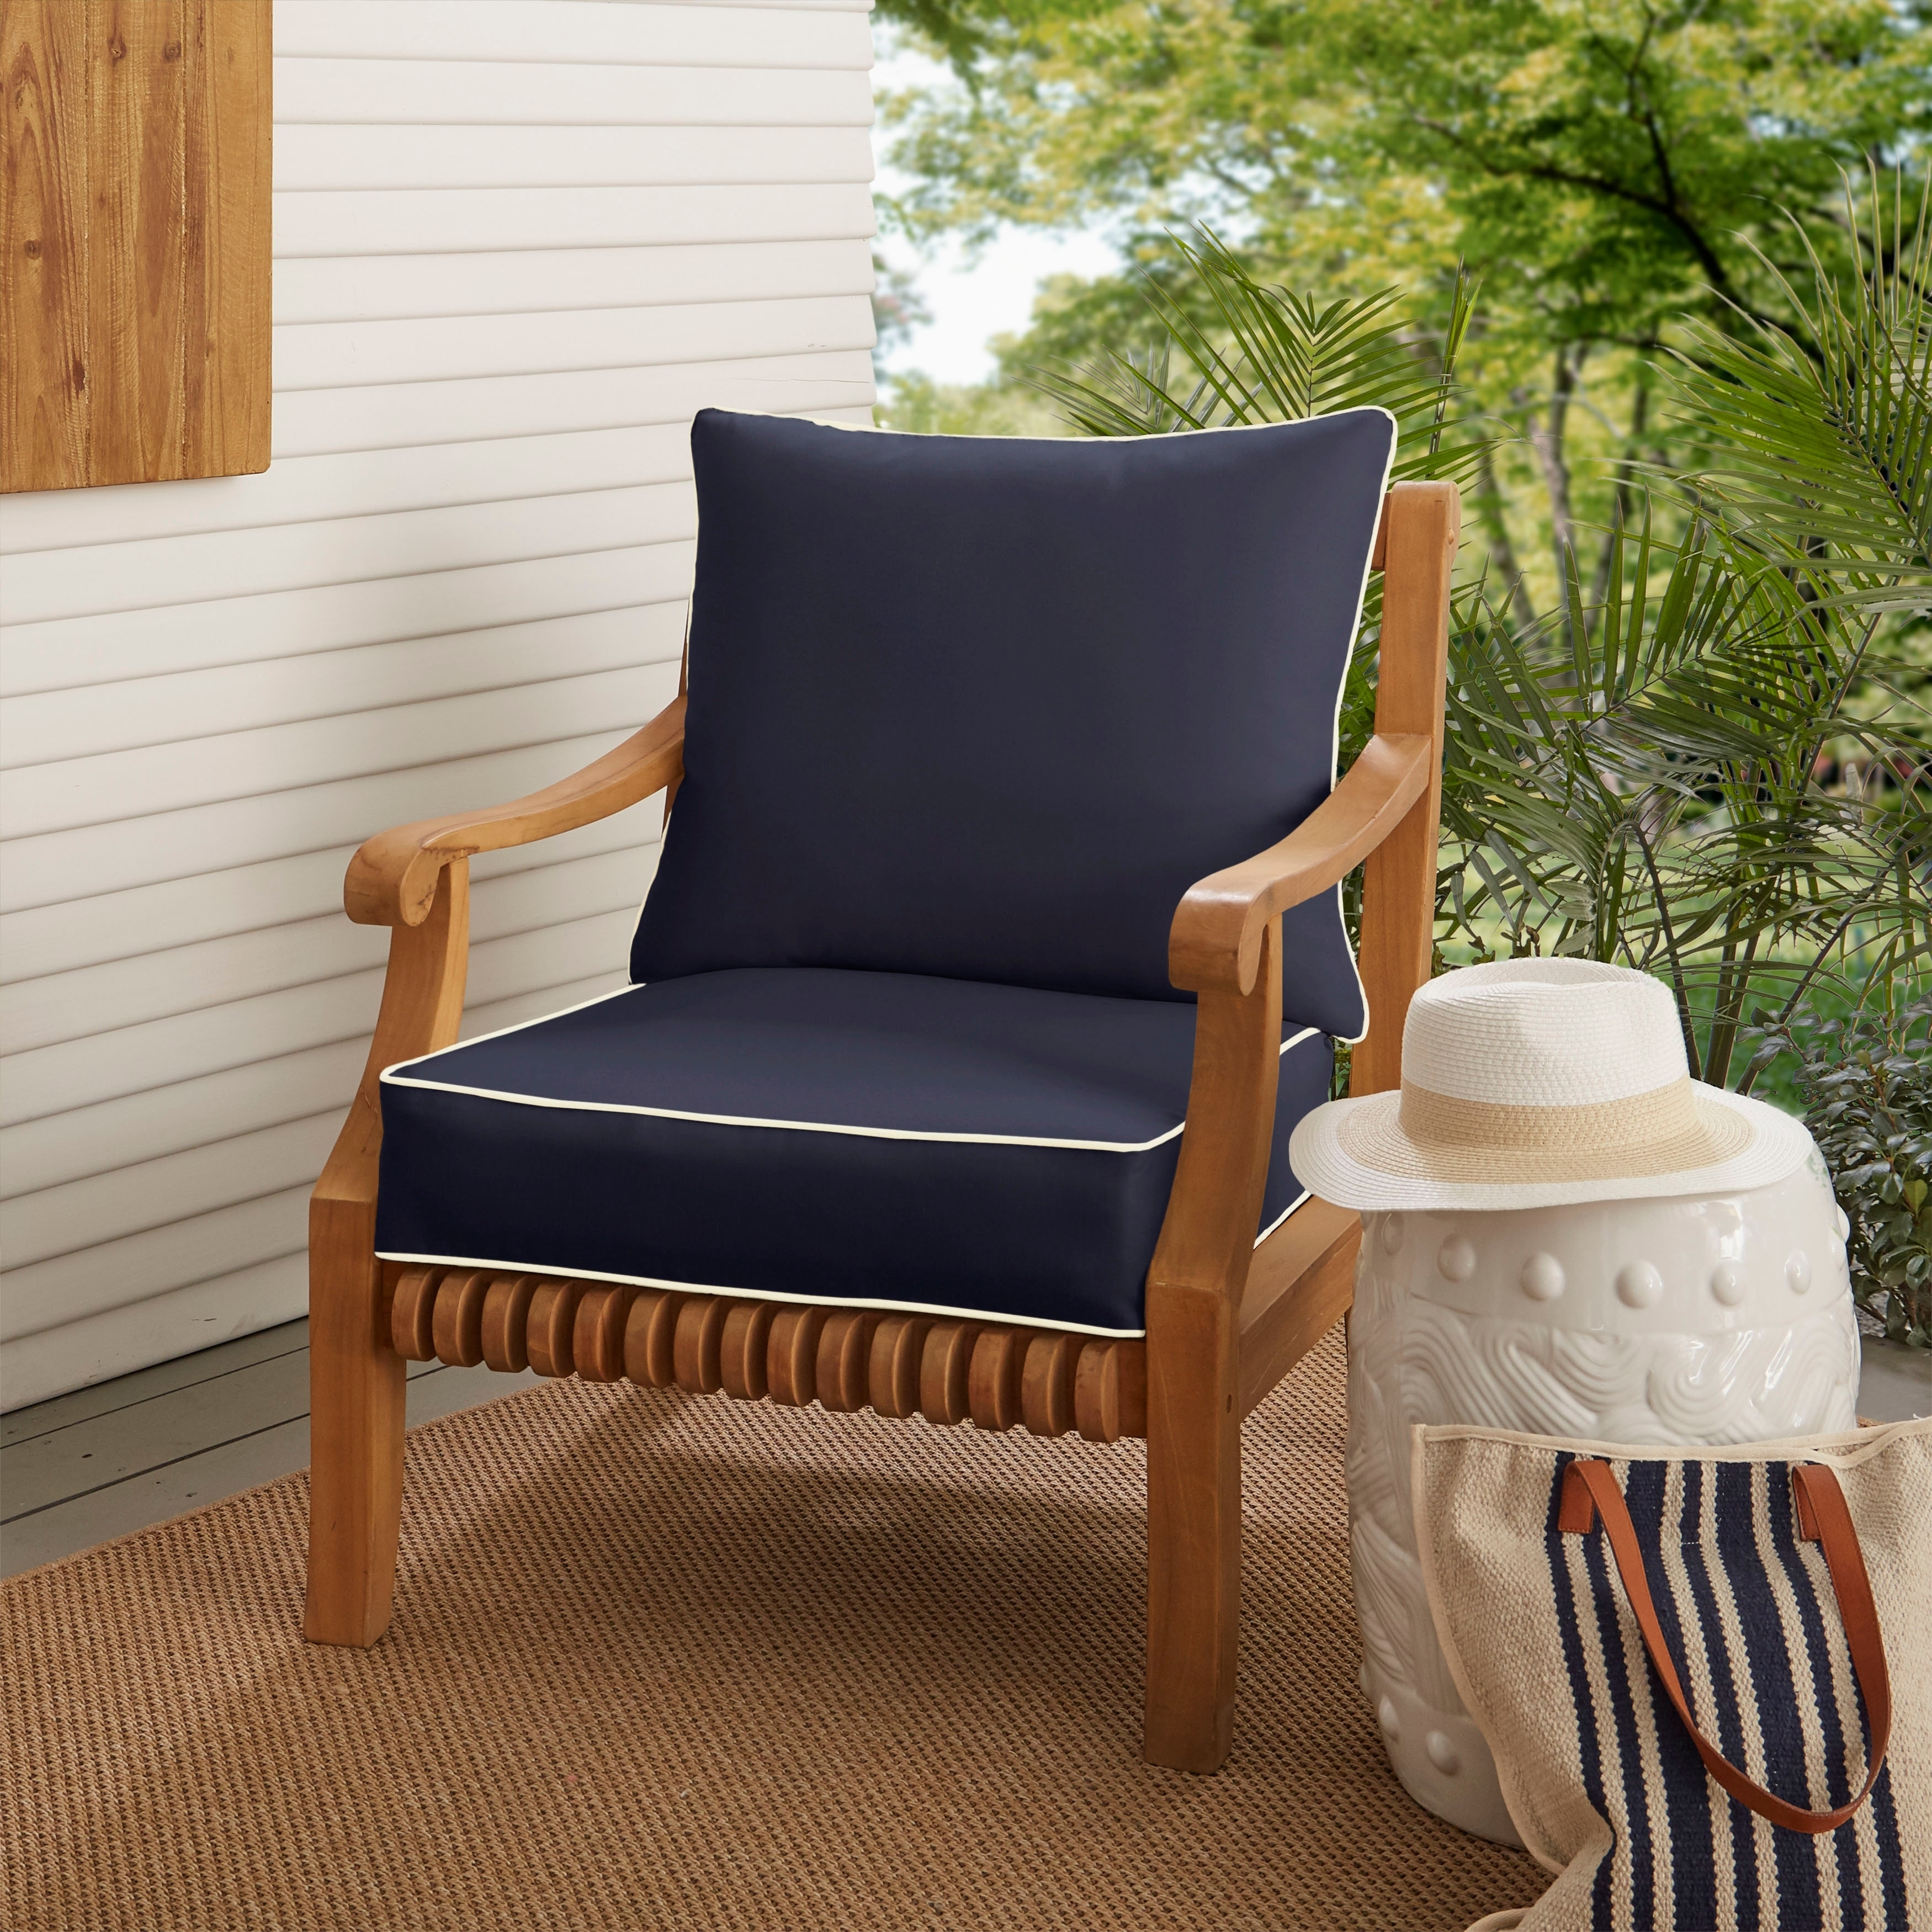 Outdoor Chair Set Sunbrella Navy With Ivory Indoor Outdoor Chair Cushion And Pillow Set Corded